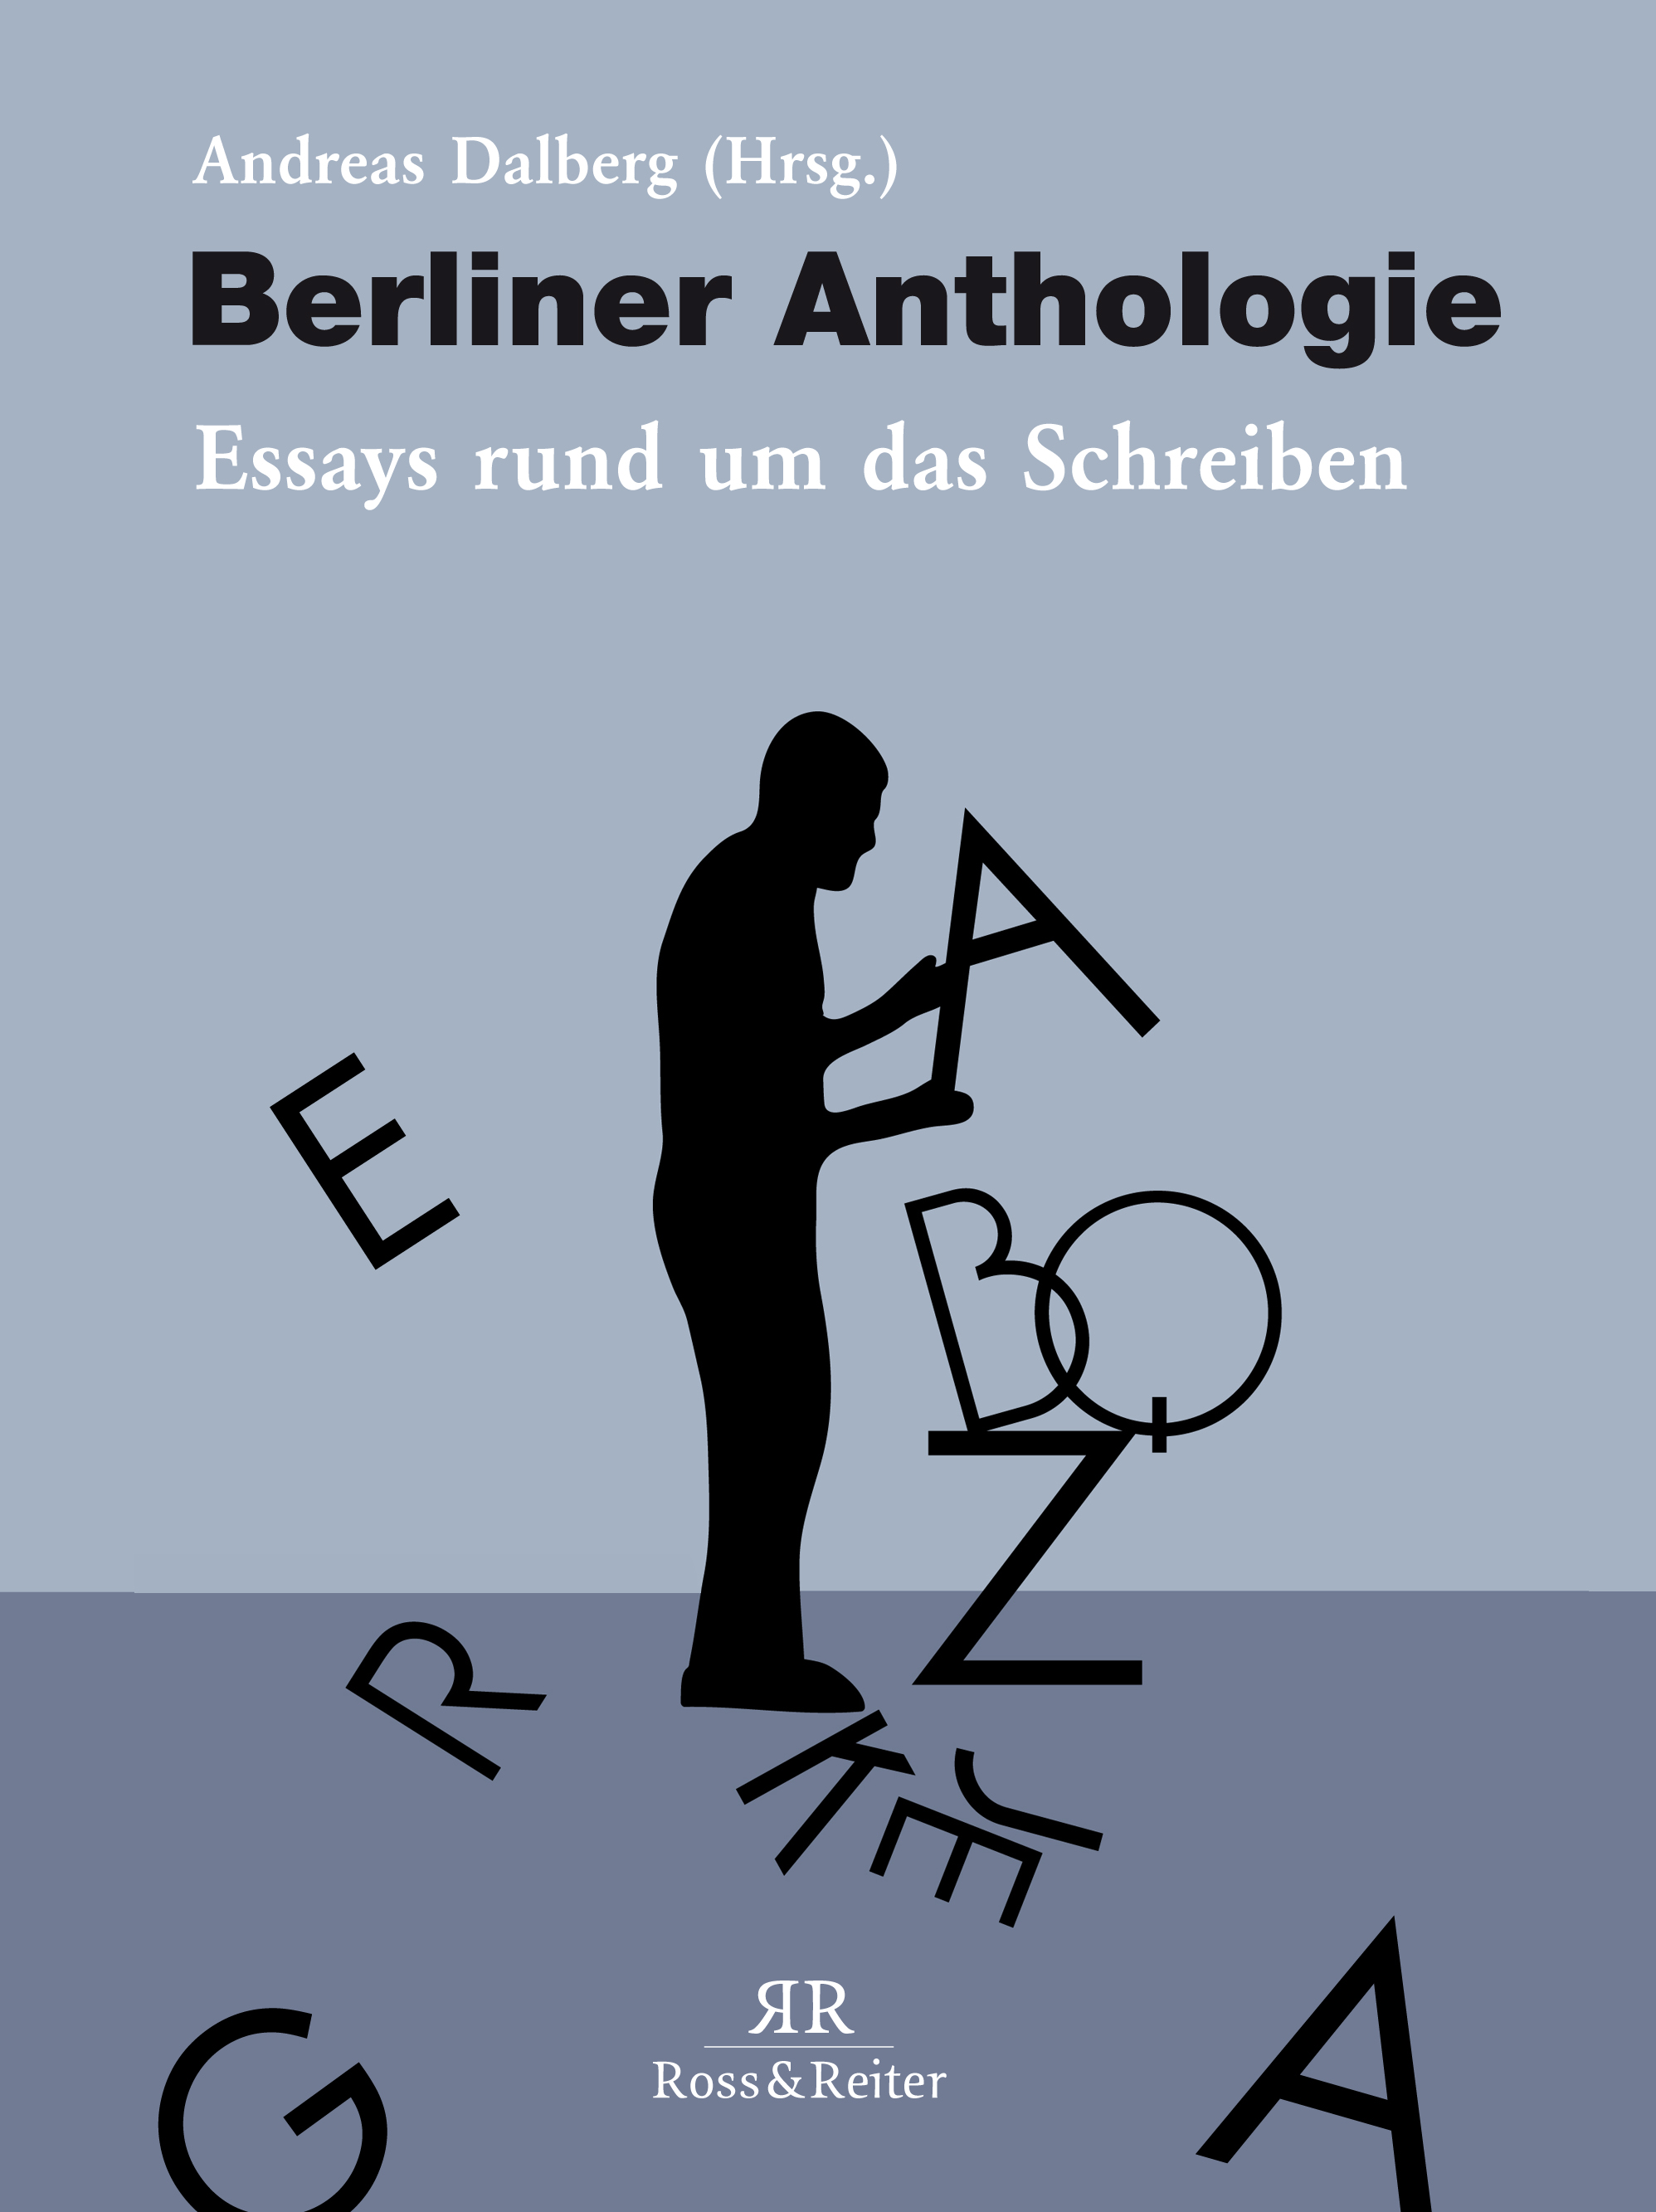 Berliner_Anthologie_Cover_300dpi_original